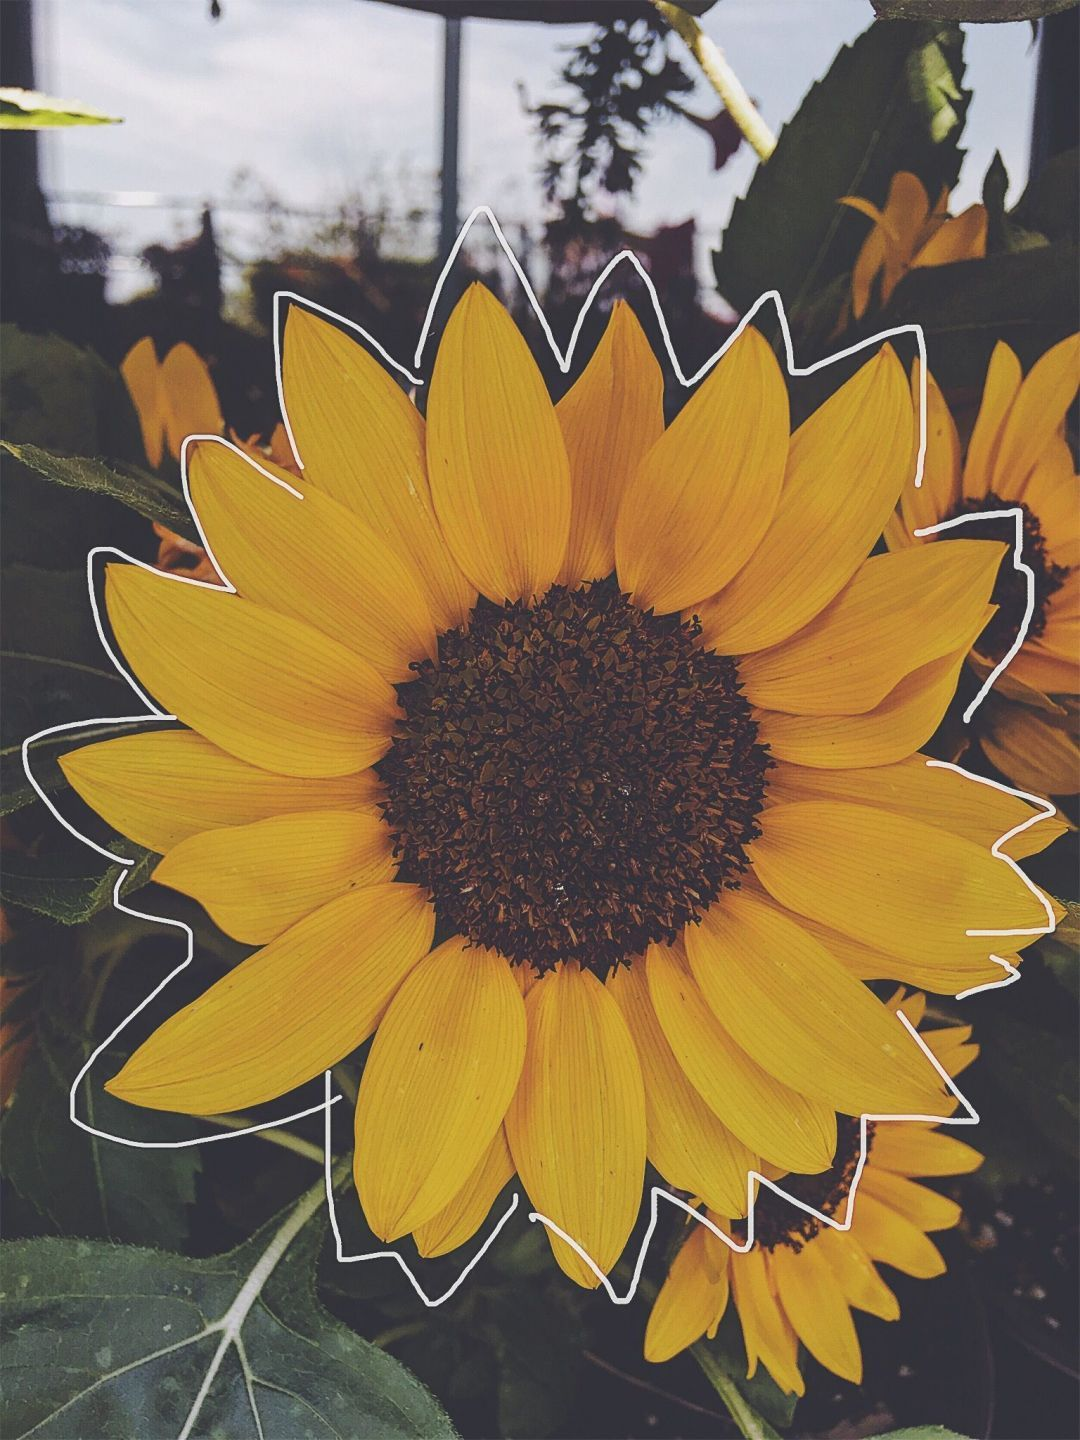 Aesthetic Sunflower Picture Wallpapers - Wallpaper Cave